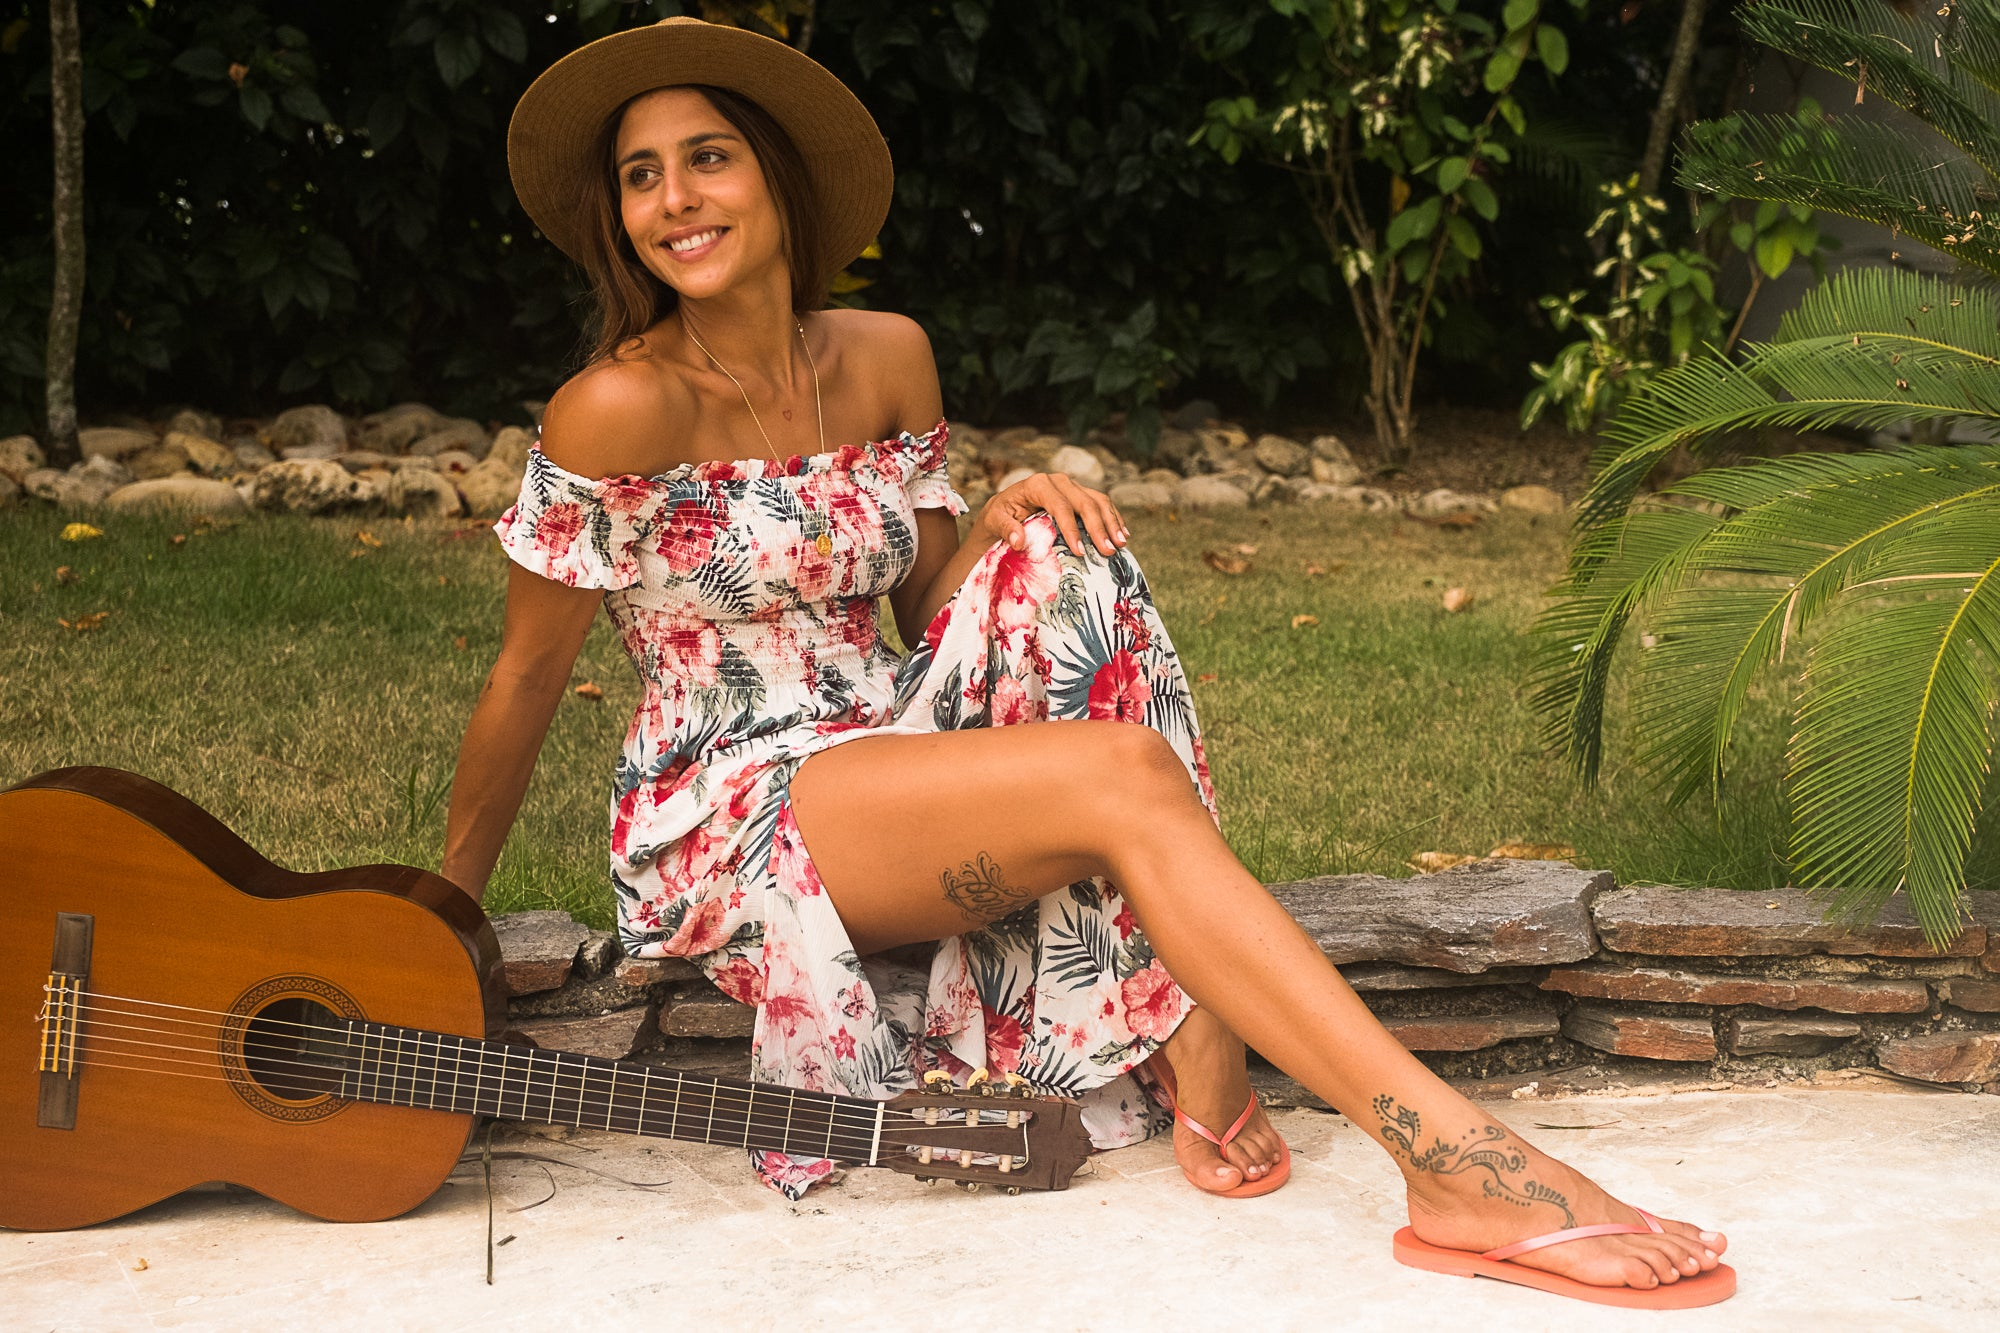 Woman posing next to guitar wearing Koy Resort floral dress and Malvados sandals